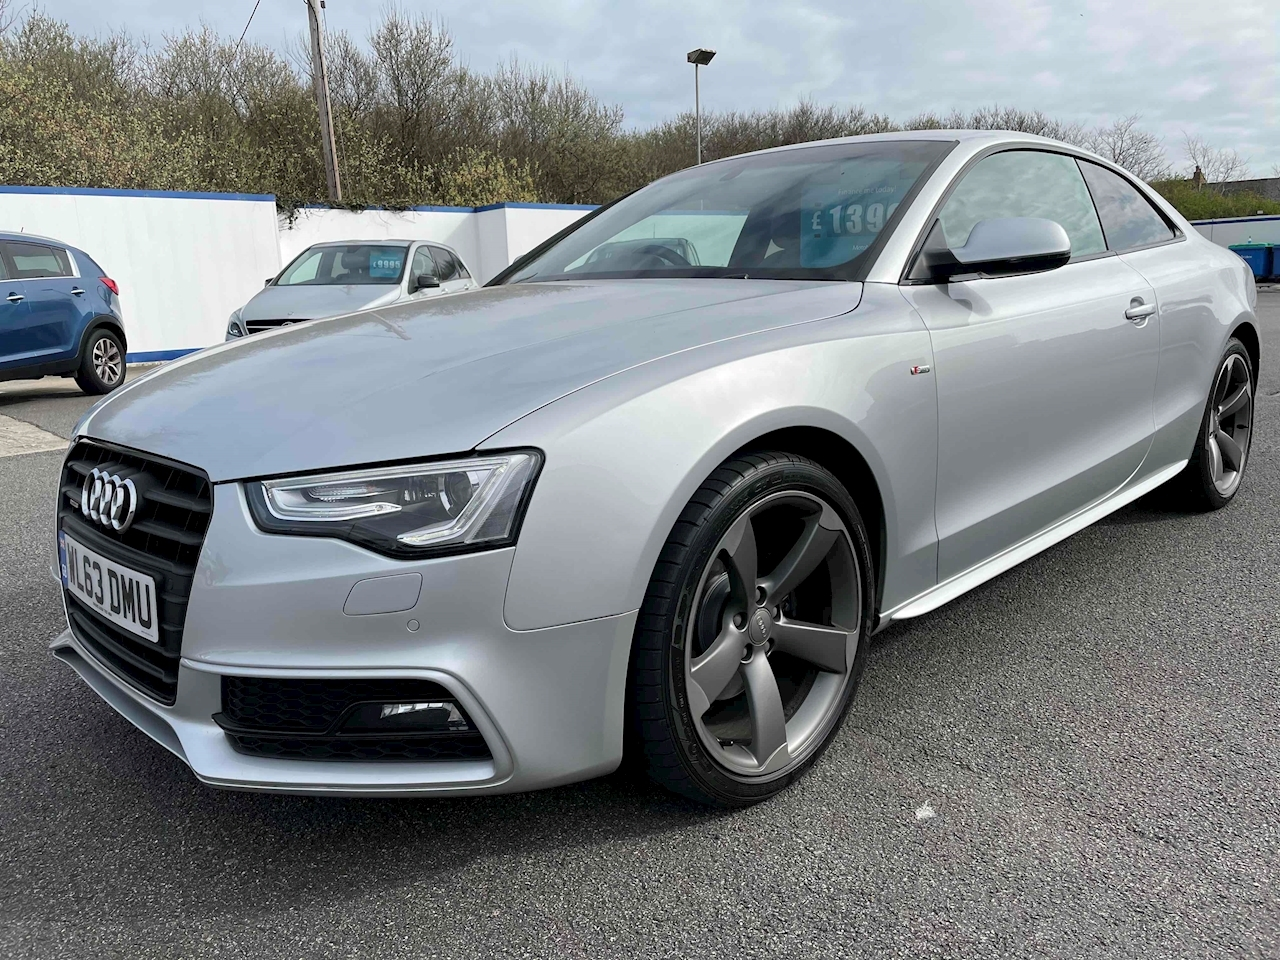 2.0 TD Black Edition Coupe 2dr Diesel Manual quattro (134 g/km, 175 bhp)